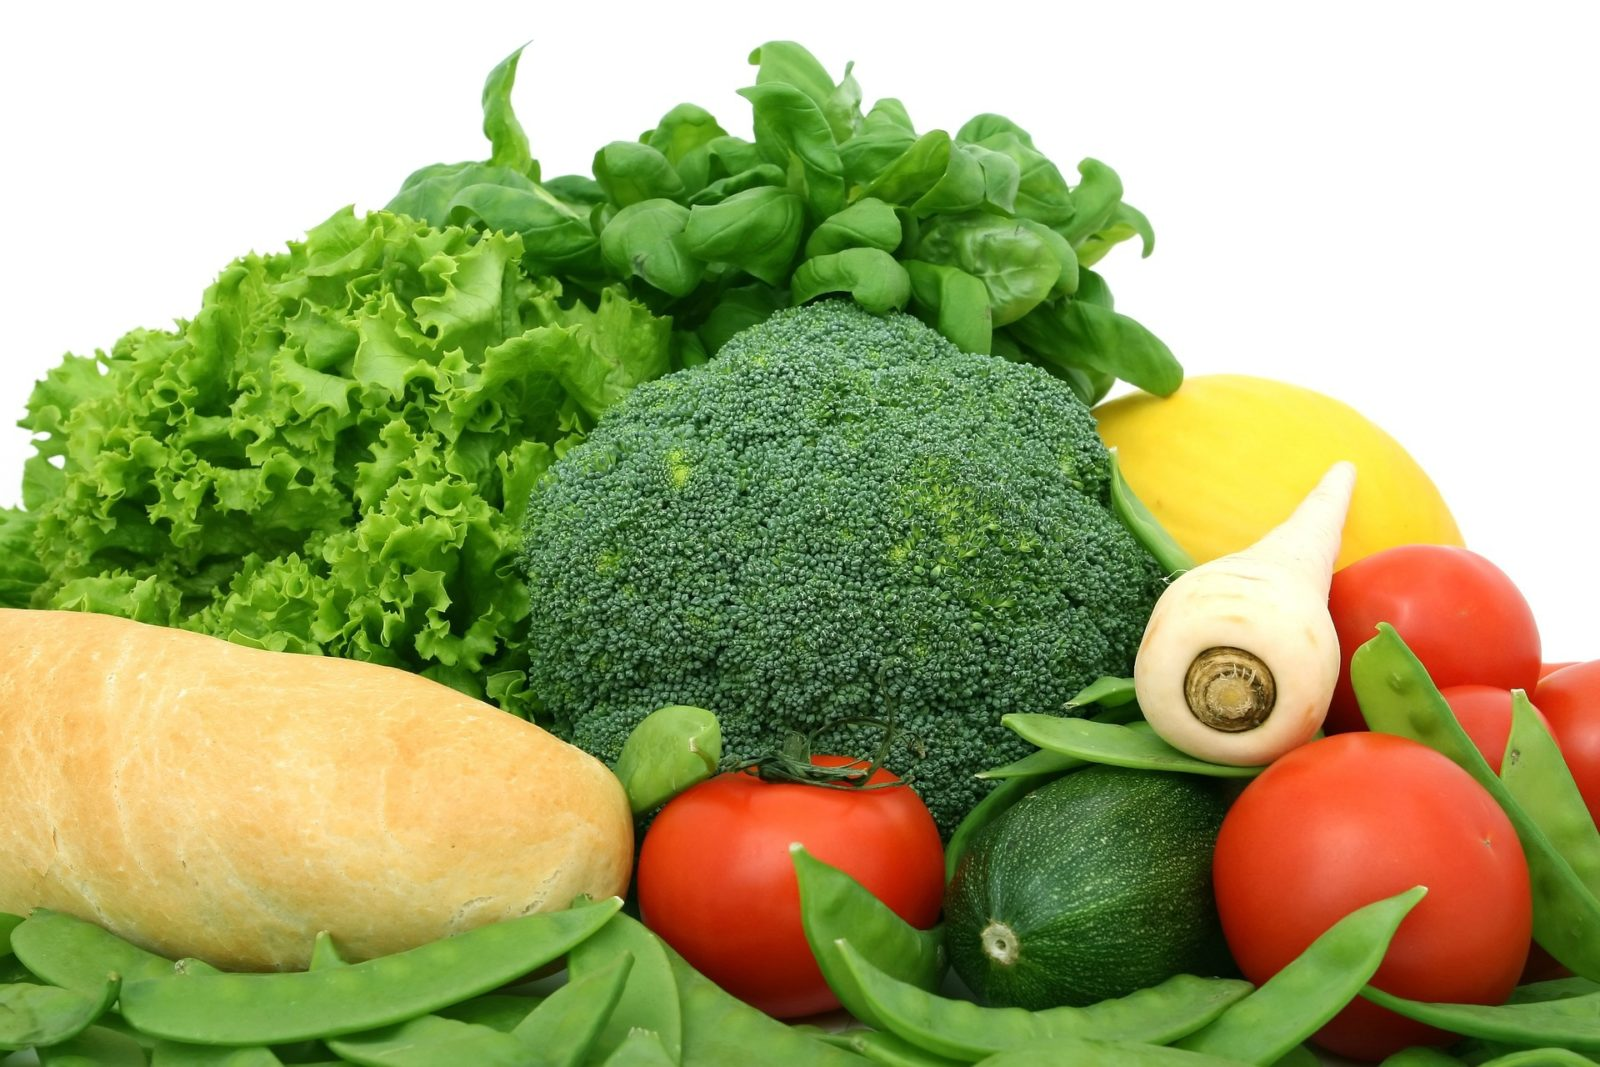 Health experts say increasing vegetable and fibre intake can improve gut health.